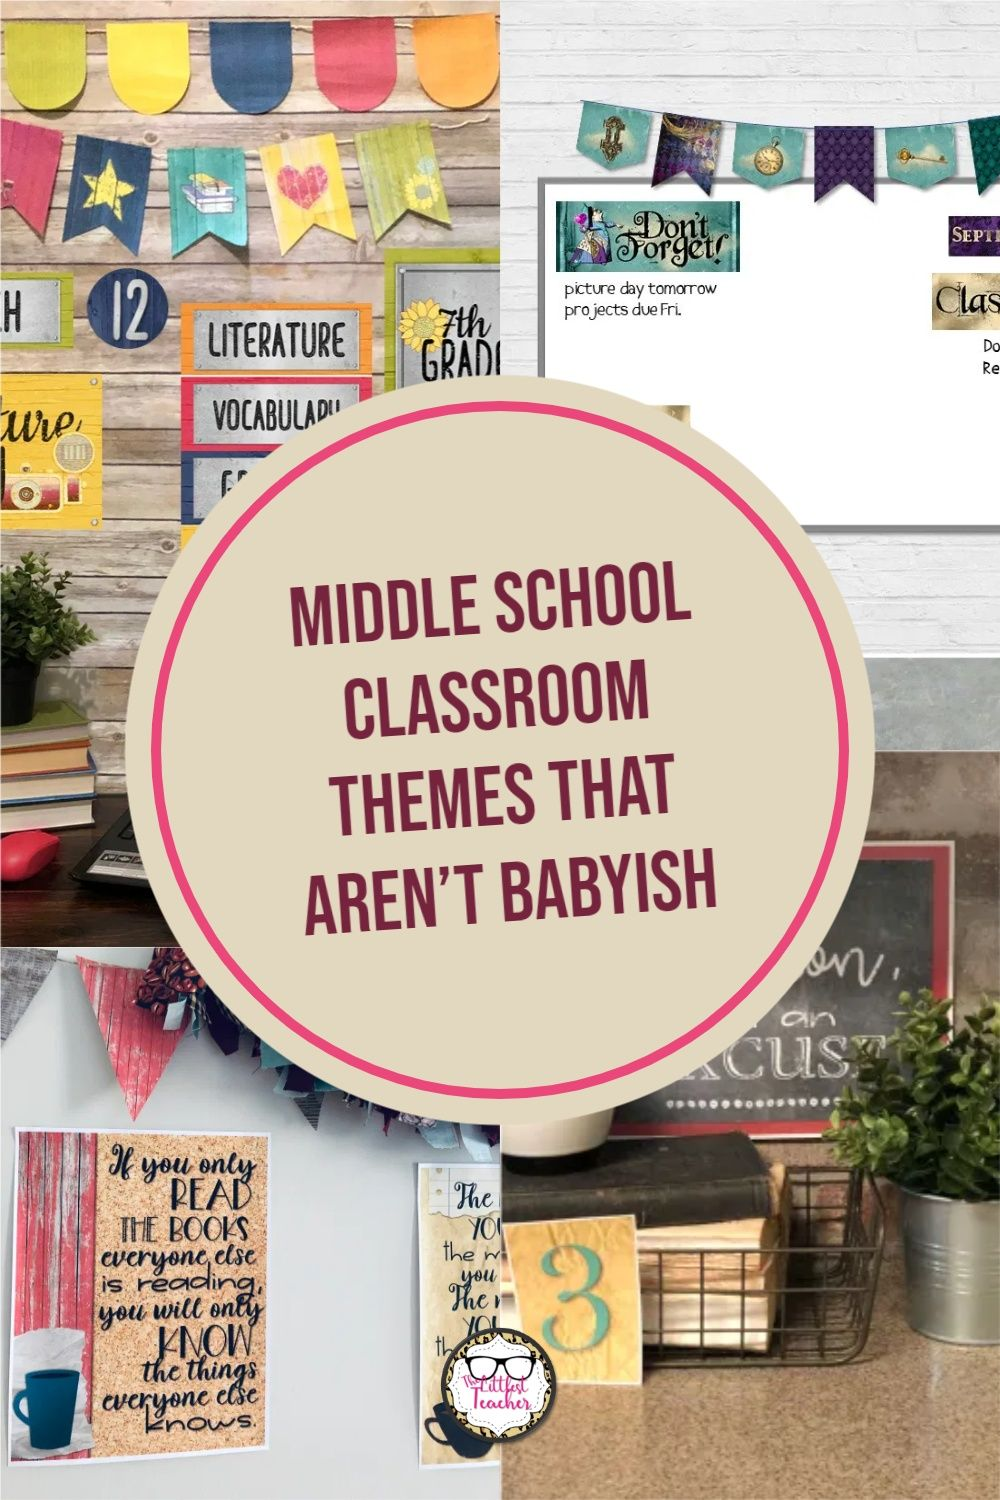 Middle School Classroom Themes That Aren T Babyish In 2021 Middle School Classroom Middle School Classroom Themes Middle School Science Classroom